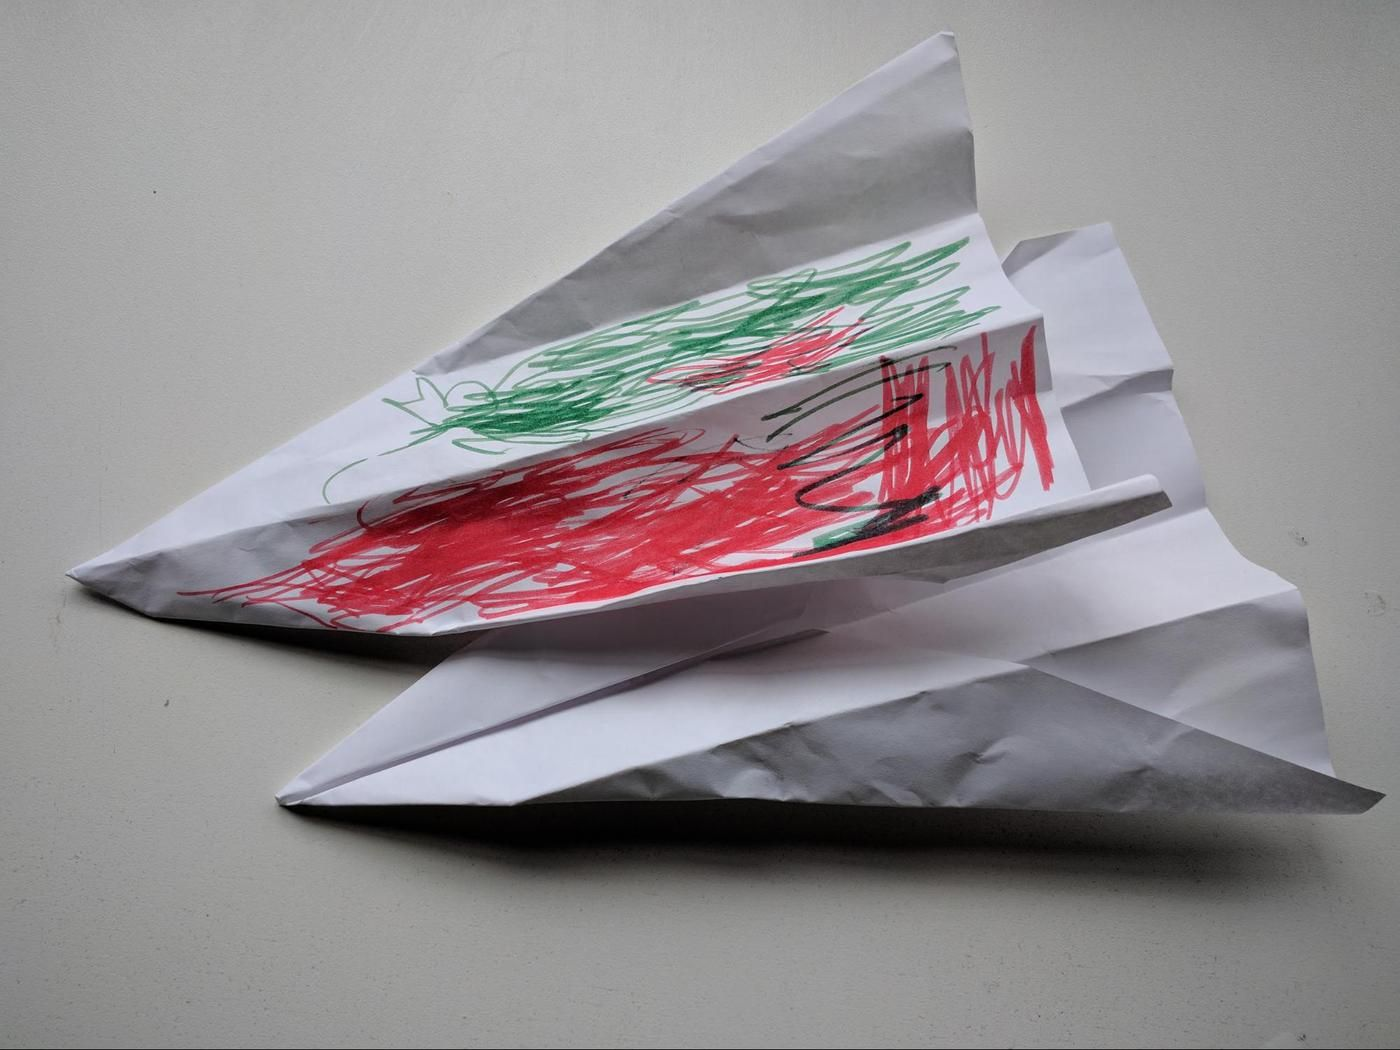 Two paper airplanes that a child gave to DragonBot.